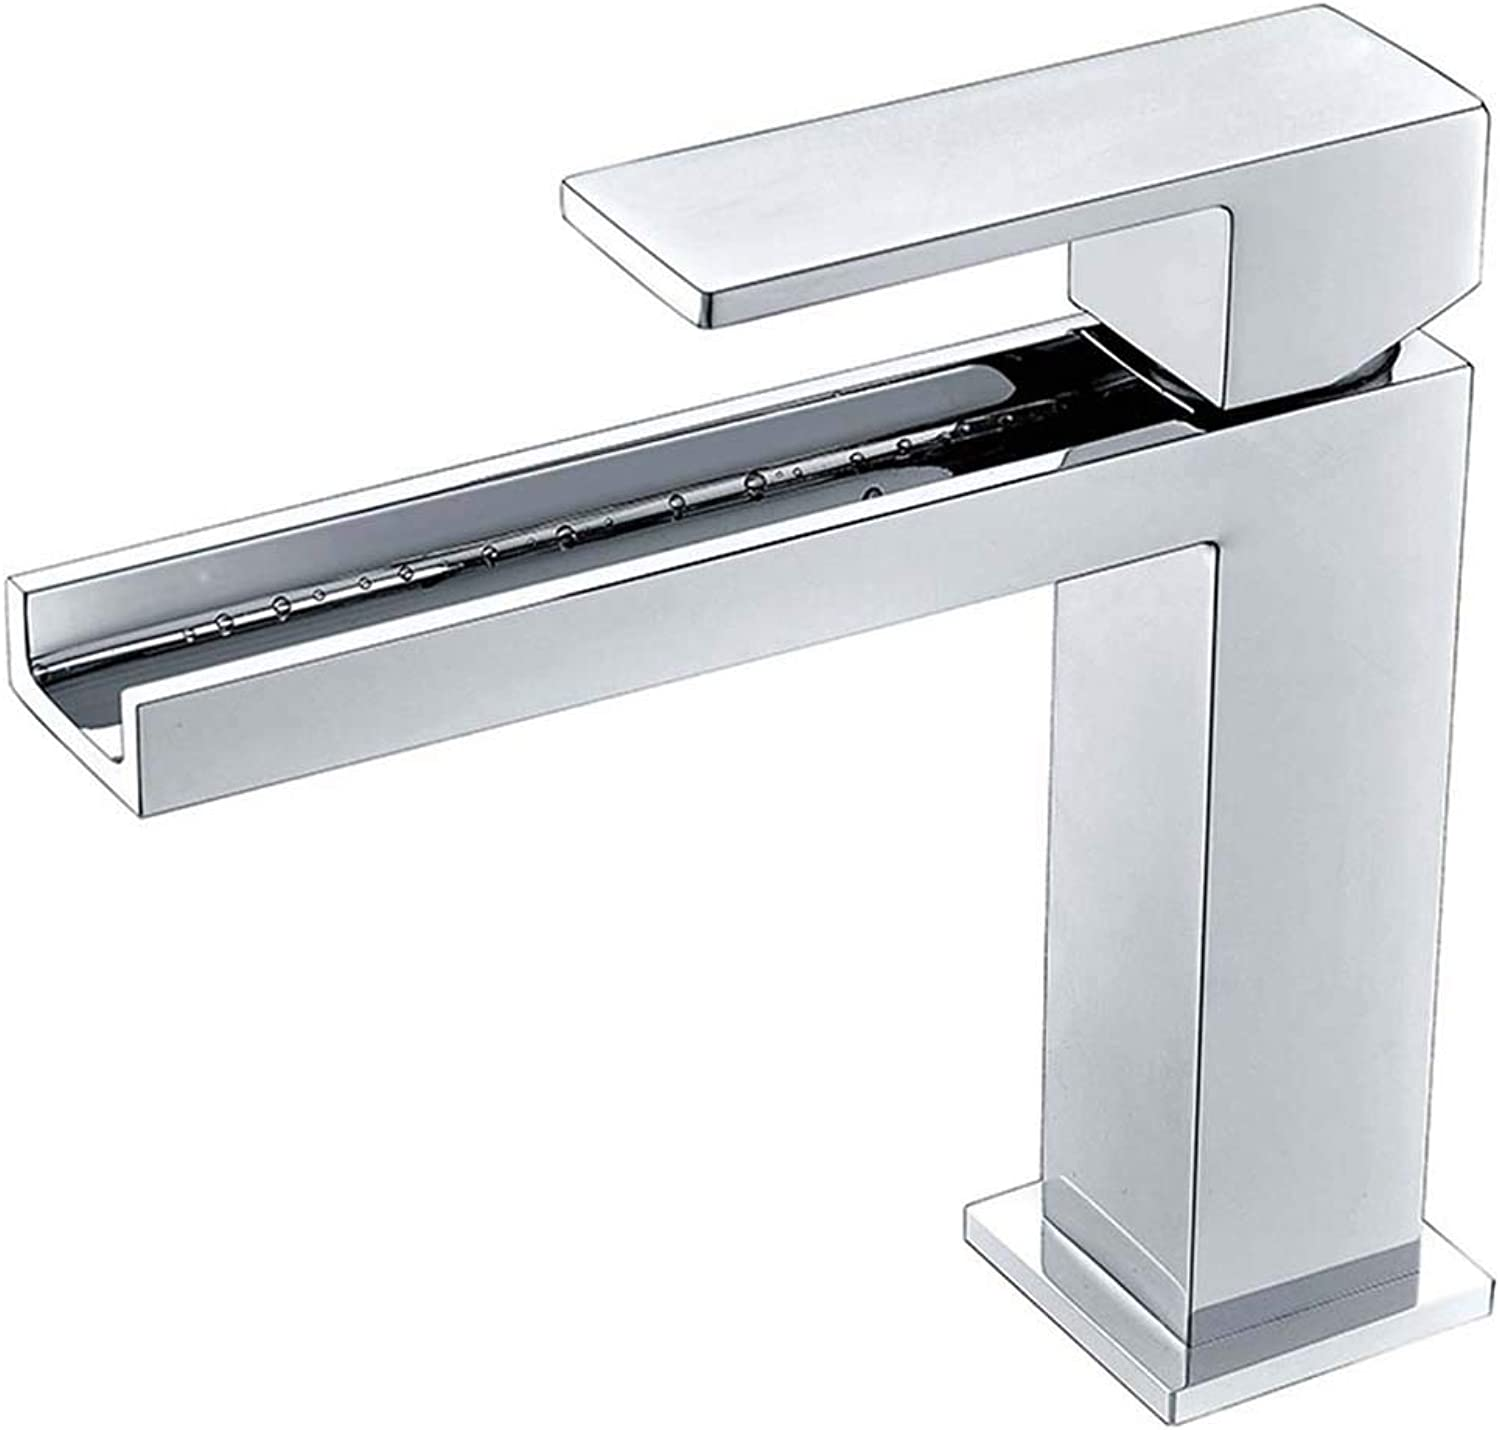 Flashing FL- Square Basin Faucet, Chrome-plated Hot and Cold Mixing Basin Mixer